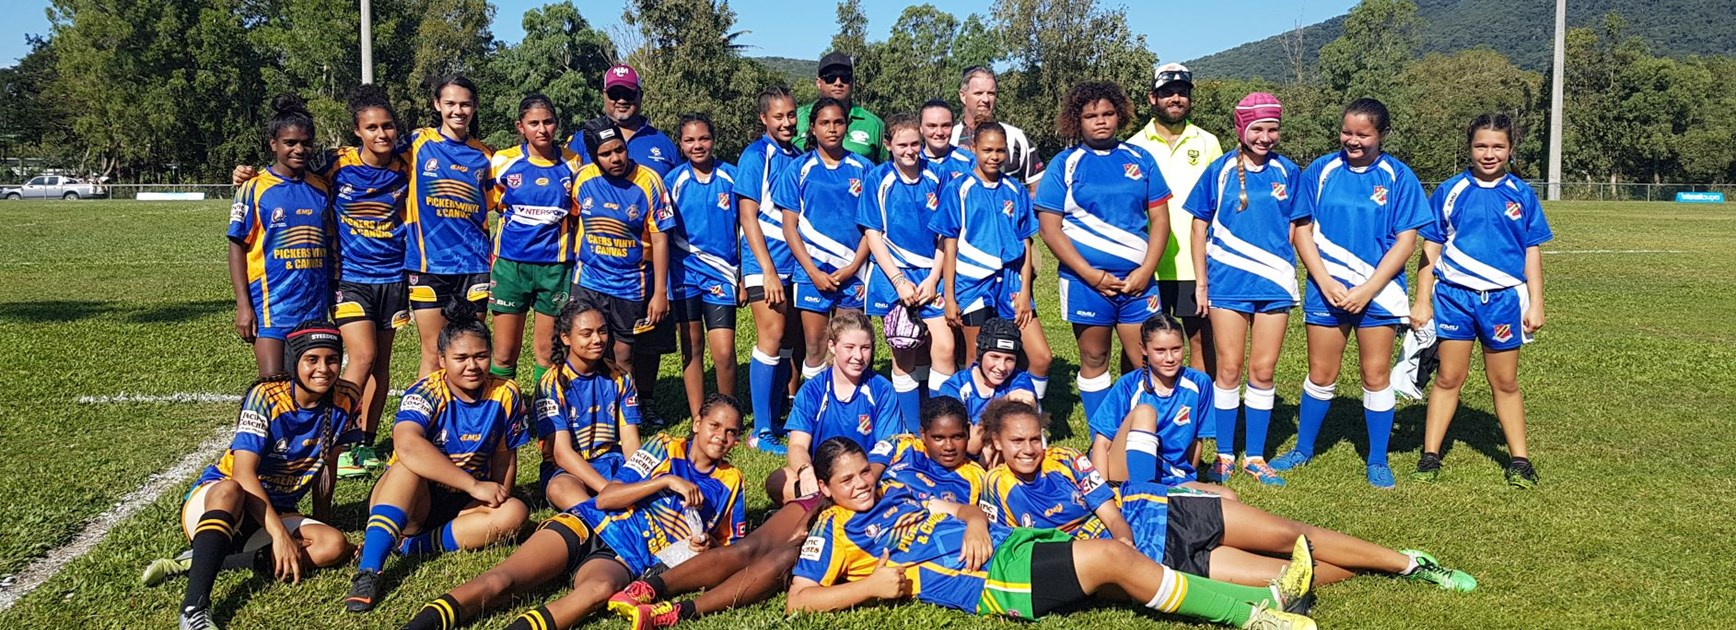 Cooktown juniors shine at Country Week event